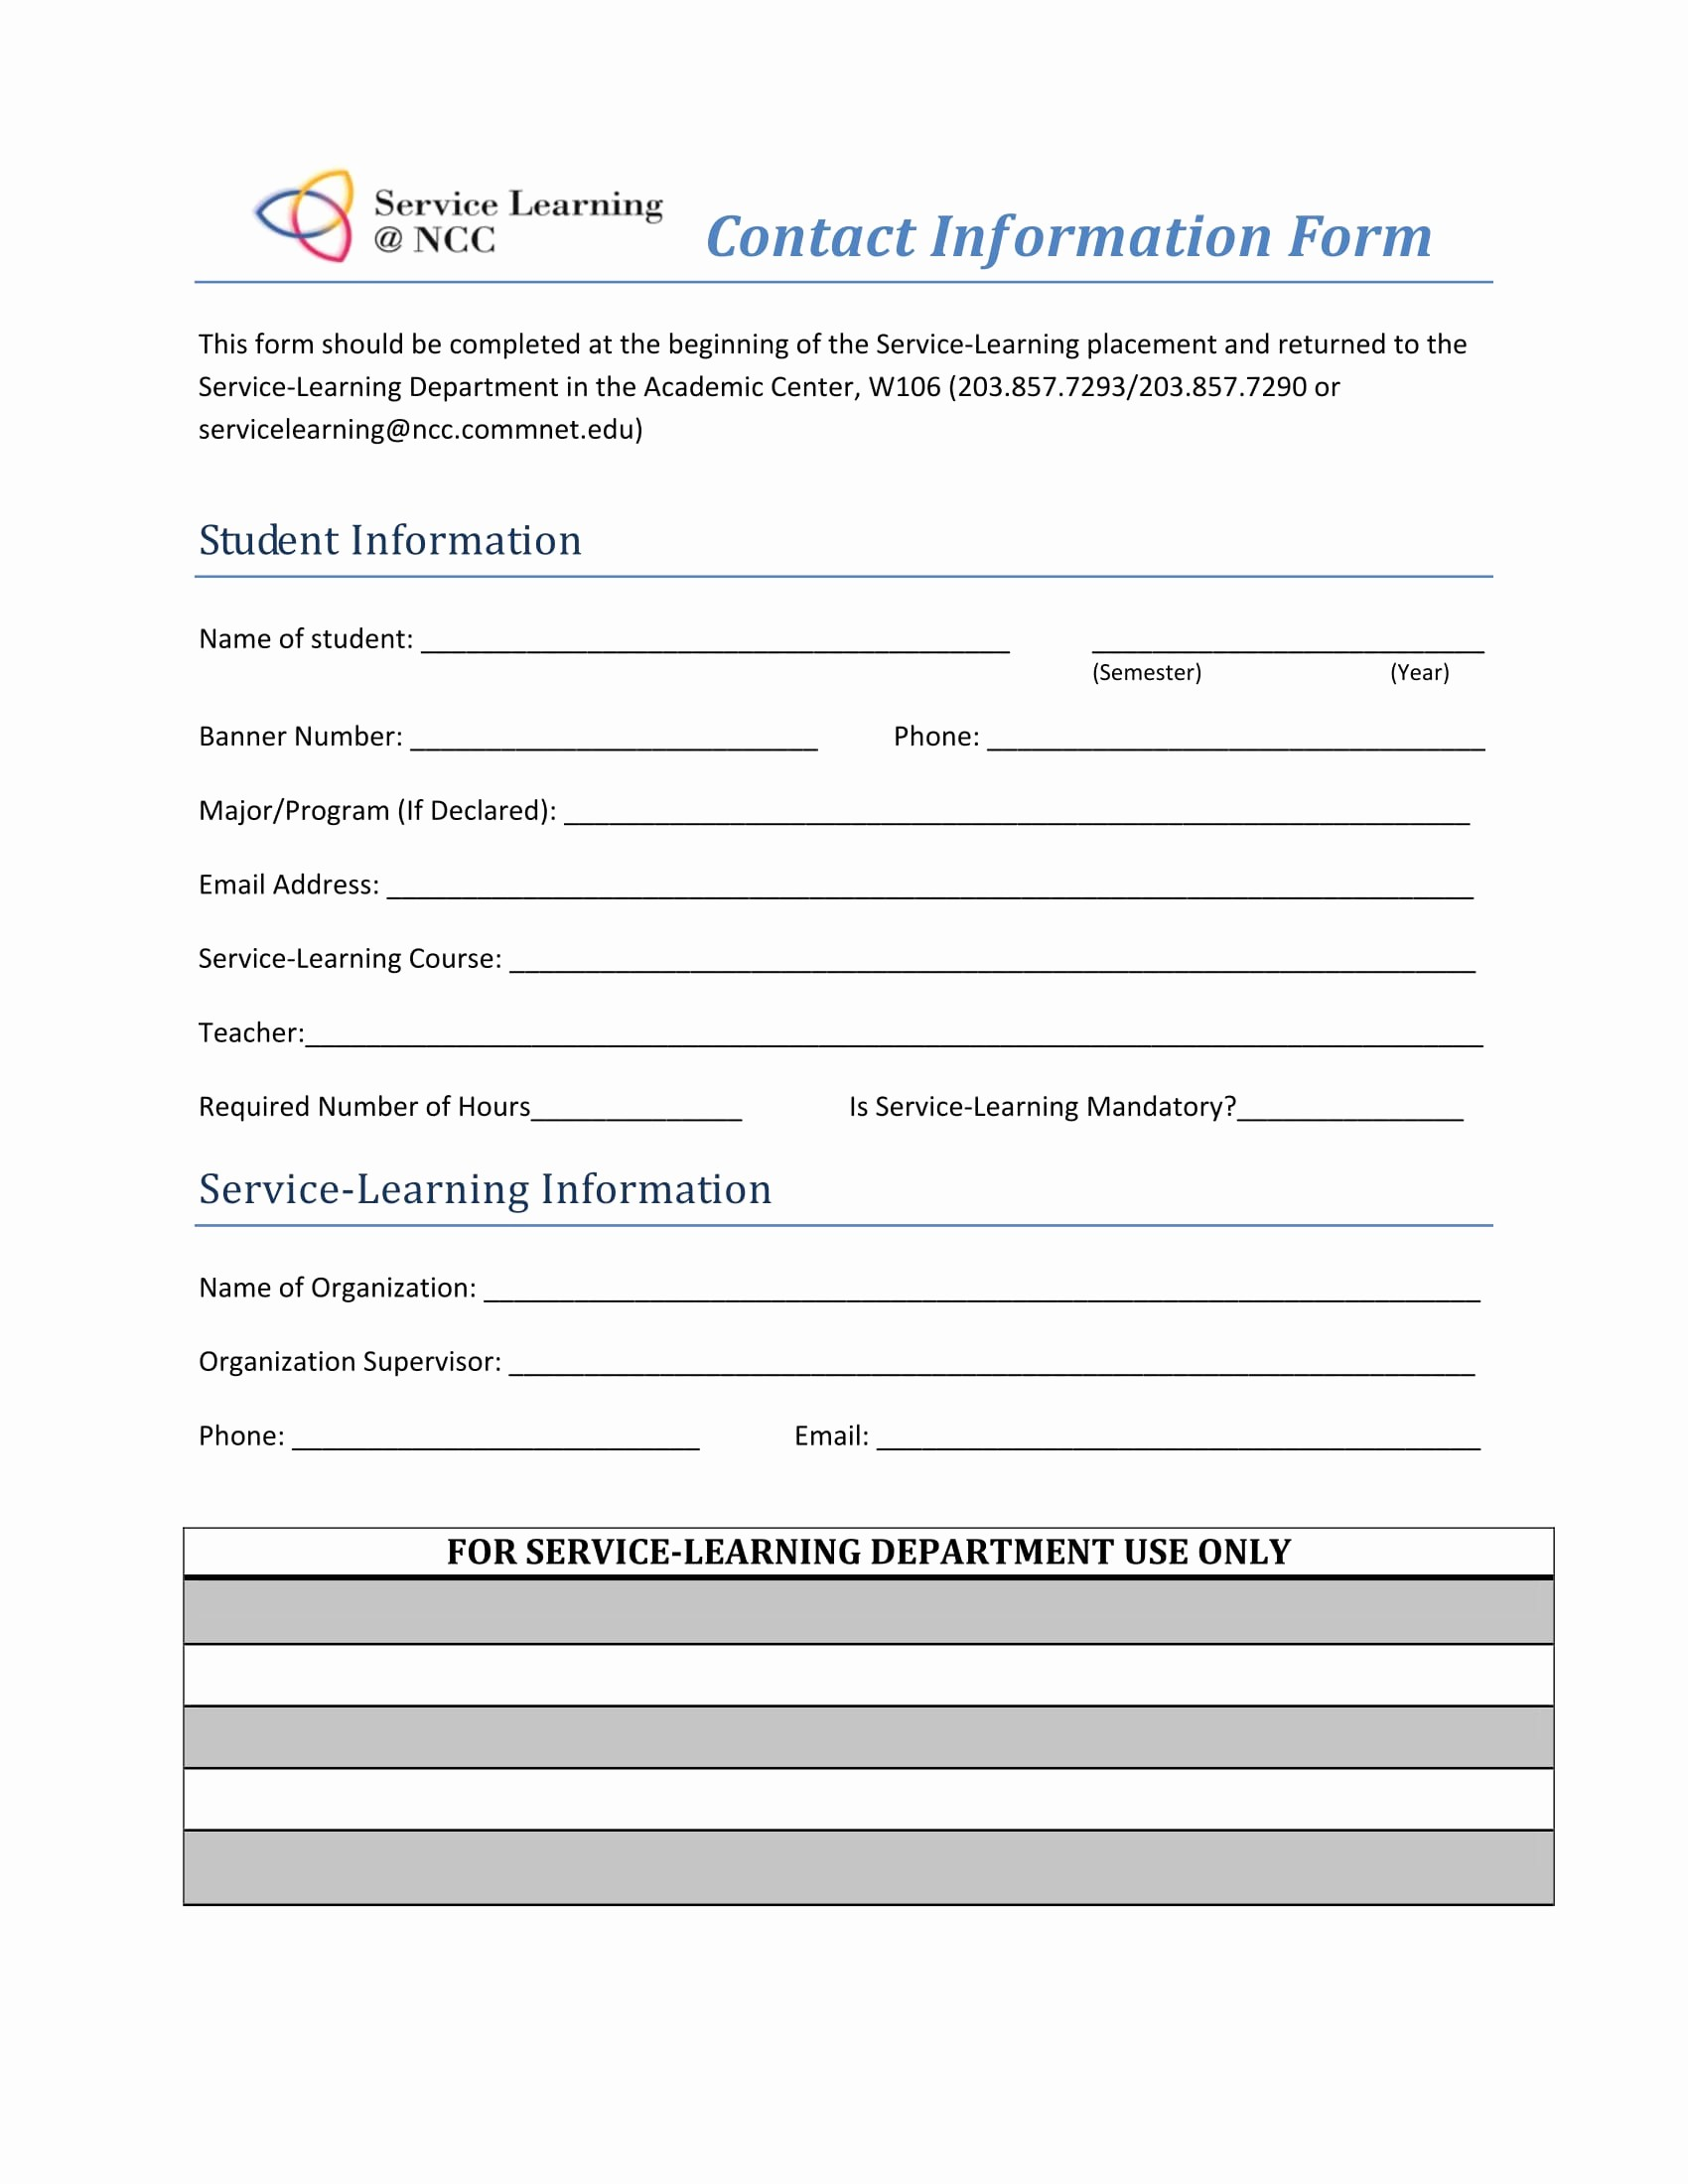 Contact Information form Template Word Elegant Contact Information Template Word Portablegasgrillweber